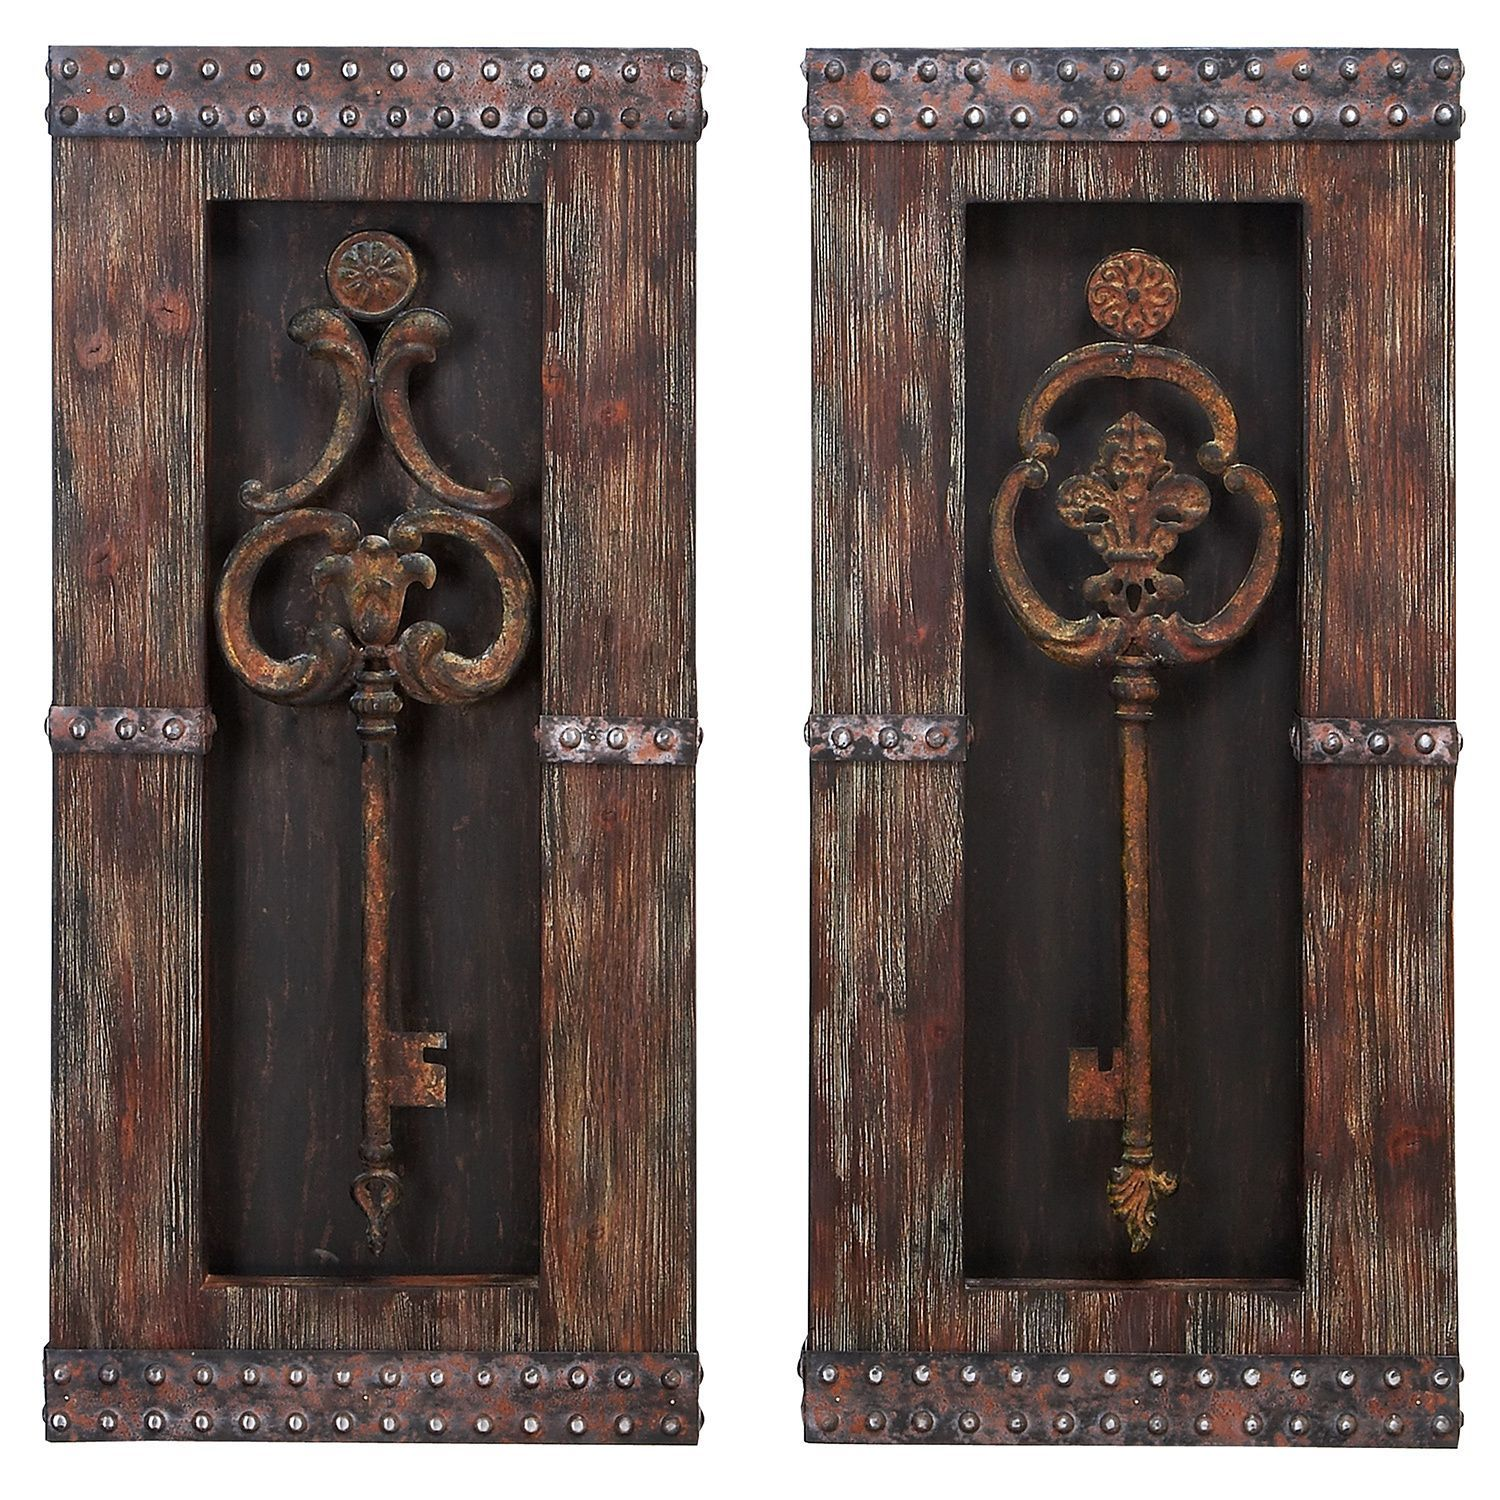 Casa cortes vintage keys piece wall art decor set home